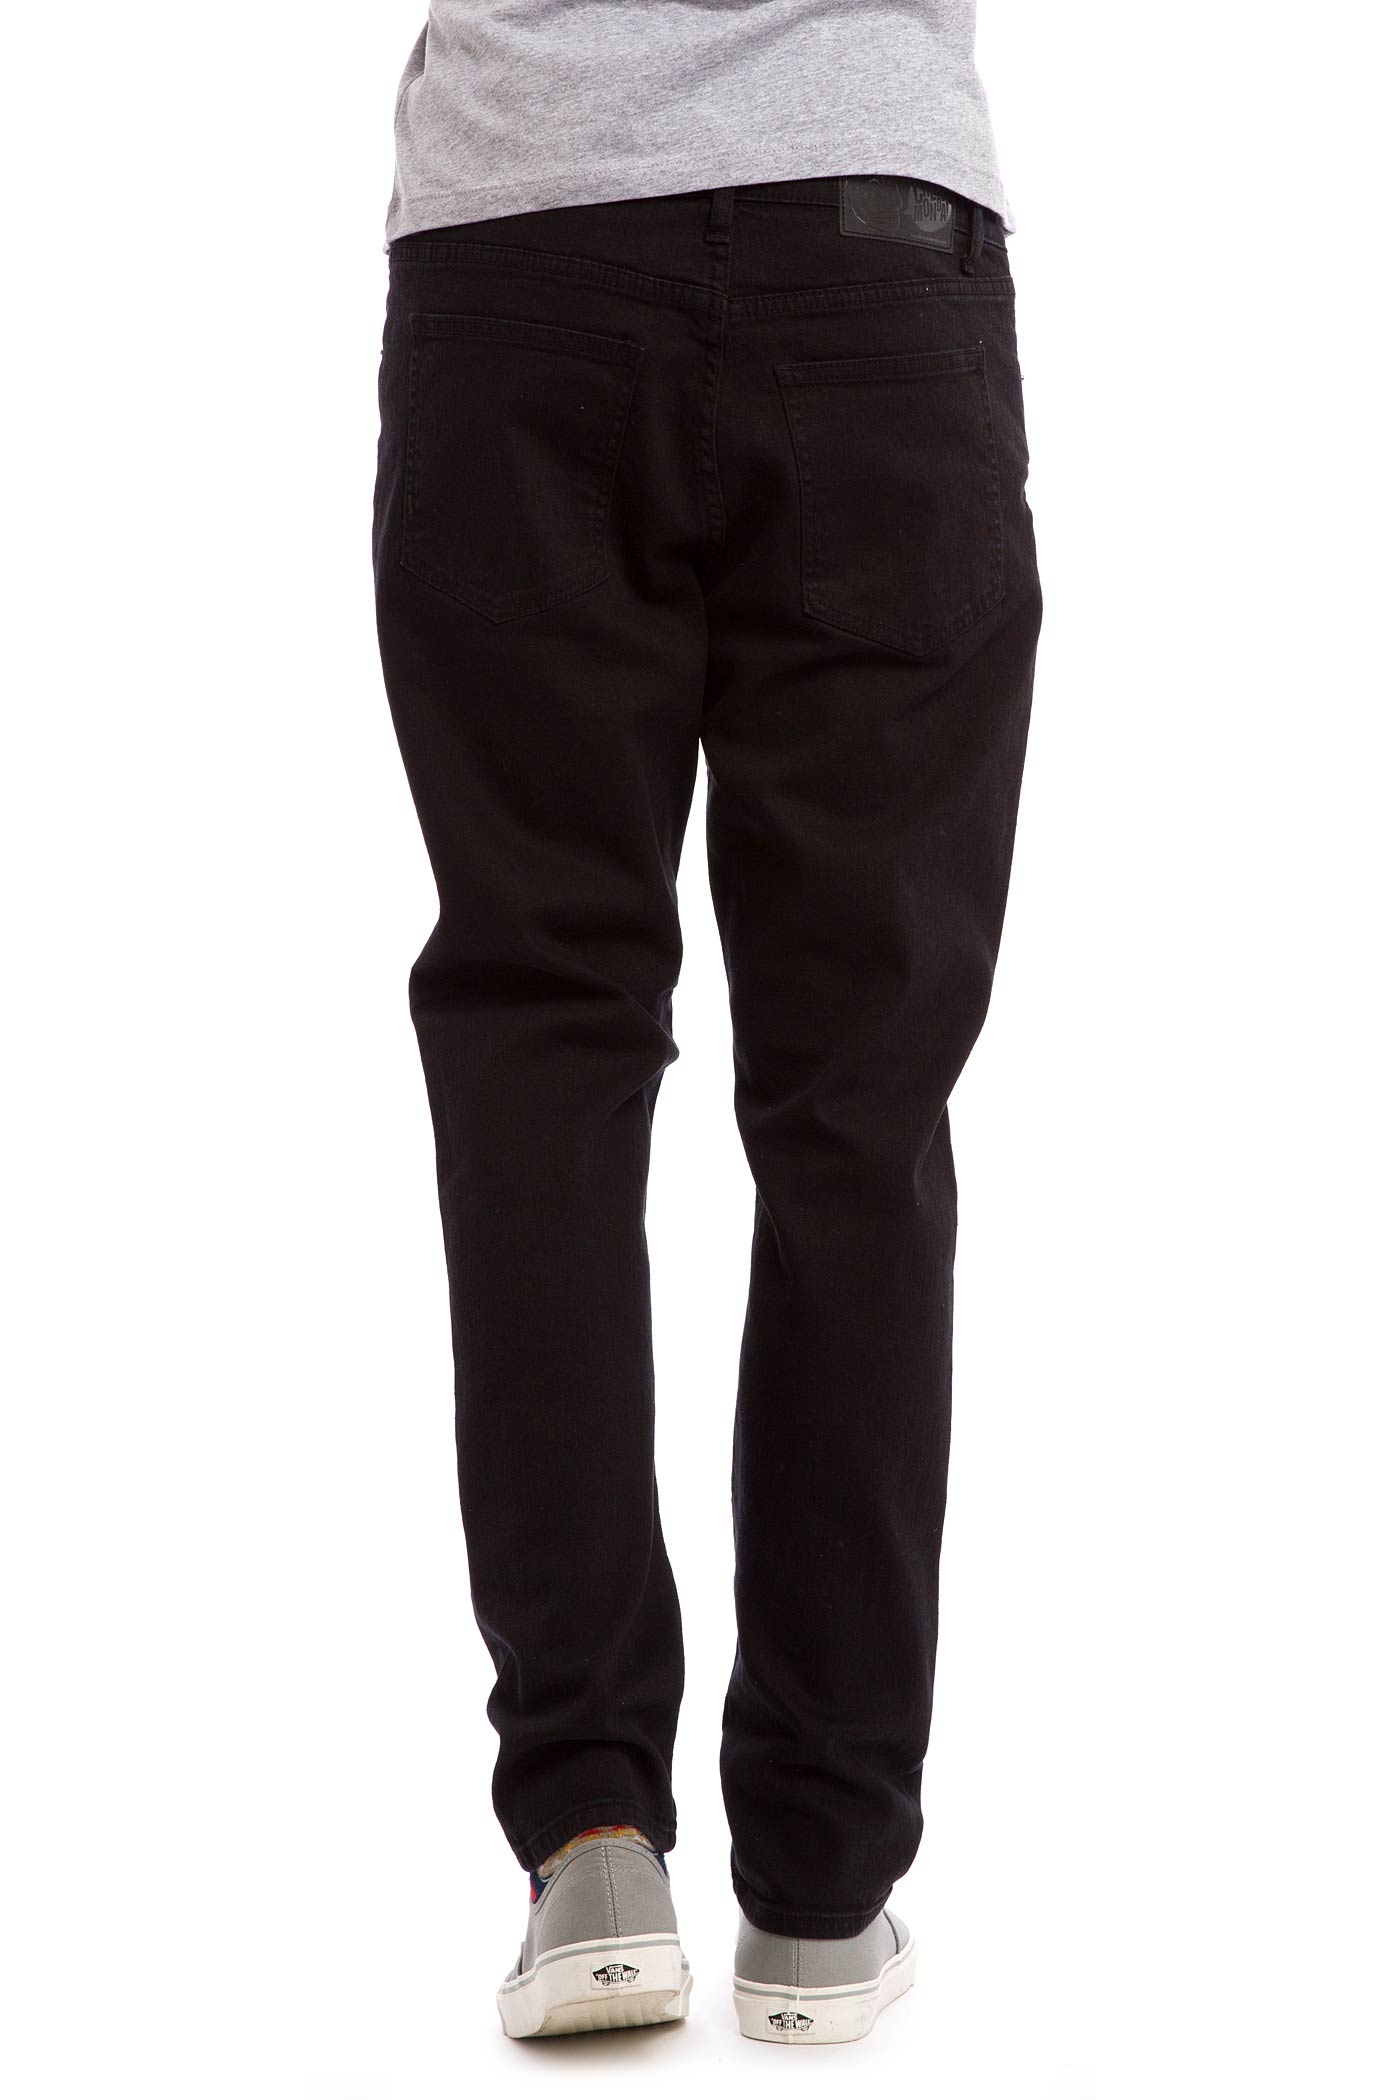 Cheap Monday Dropped Jeans (new black) buy at skatedeluxe